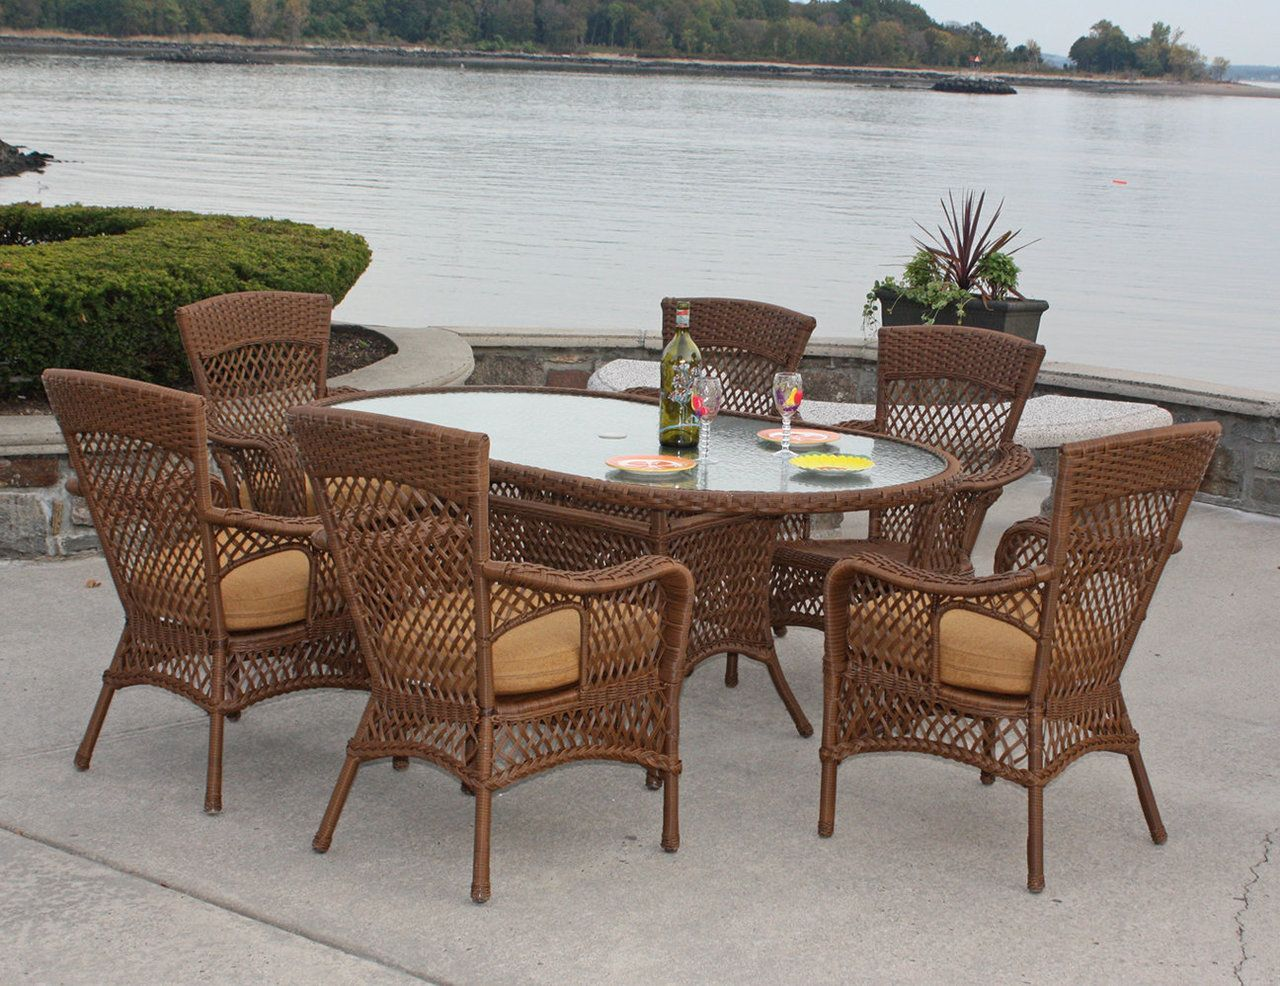 Vinyl Wicker Chairs With Ottomans Dining Set Savannah By Blog